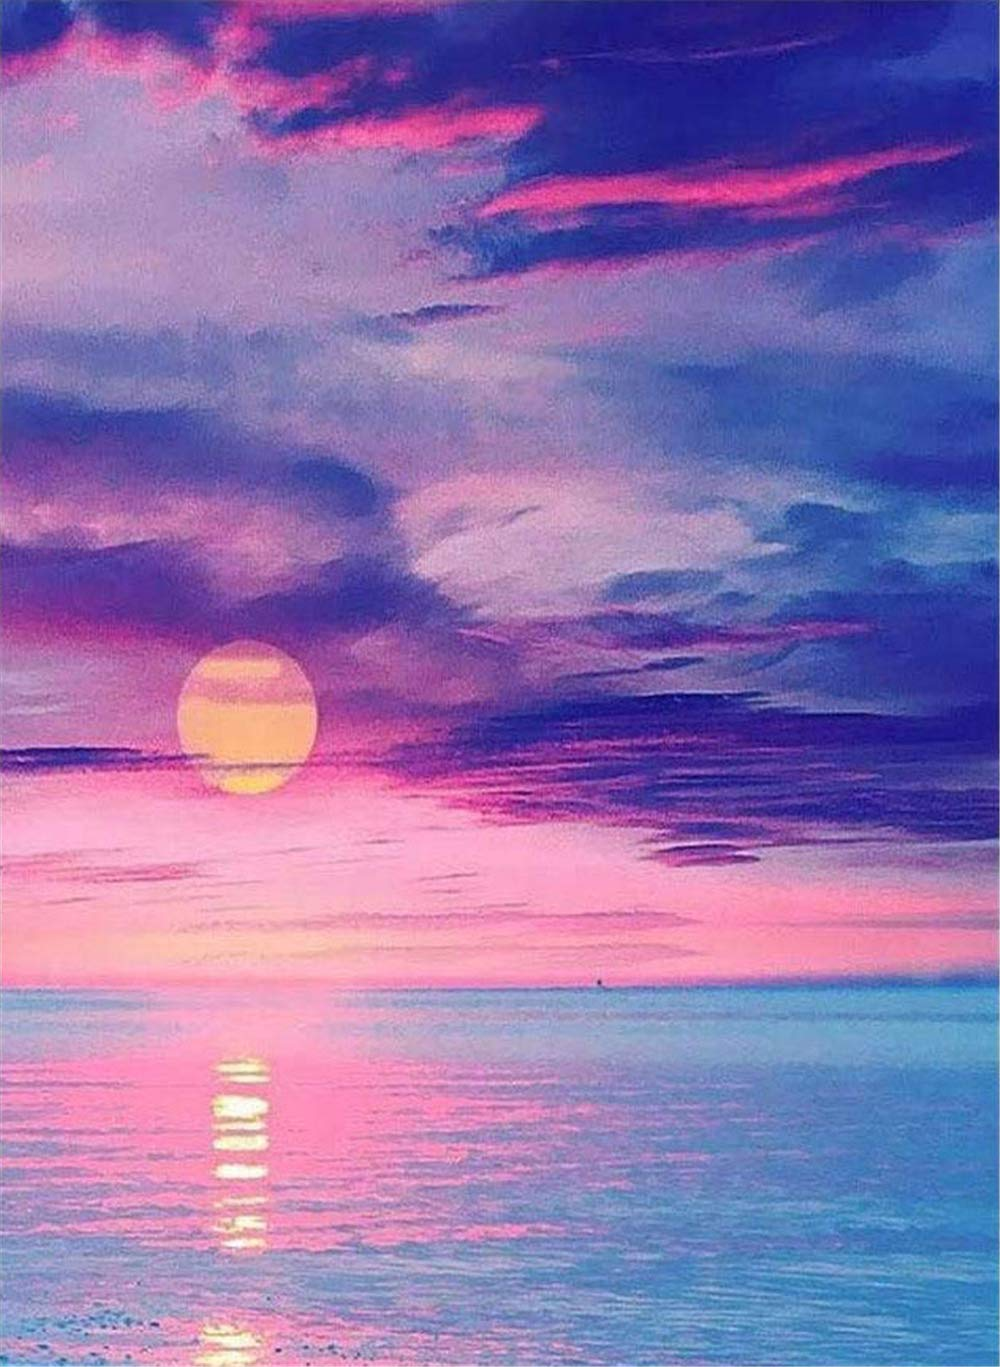 16 inch 5D Diy Diamond Painting Kit By Number Full Drill Sunrise Sea Pink Embroidery Cross Stitch Home Decor Gift 12